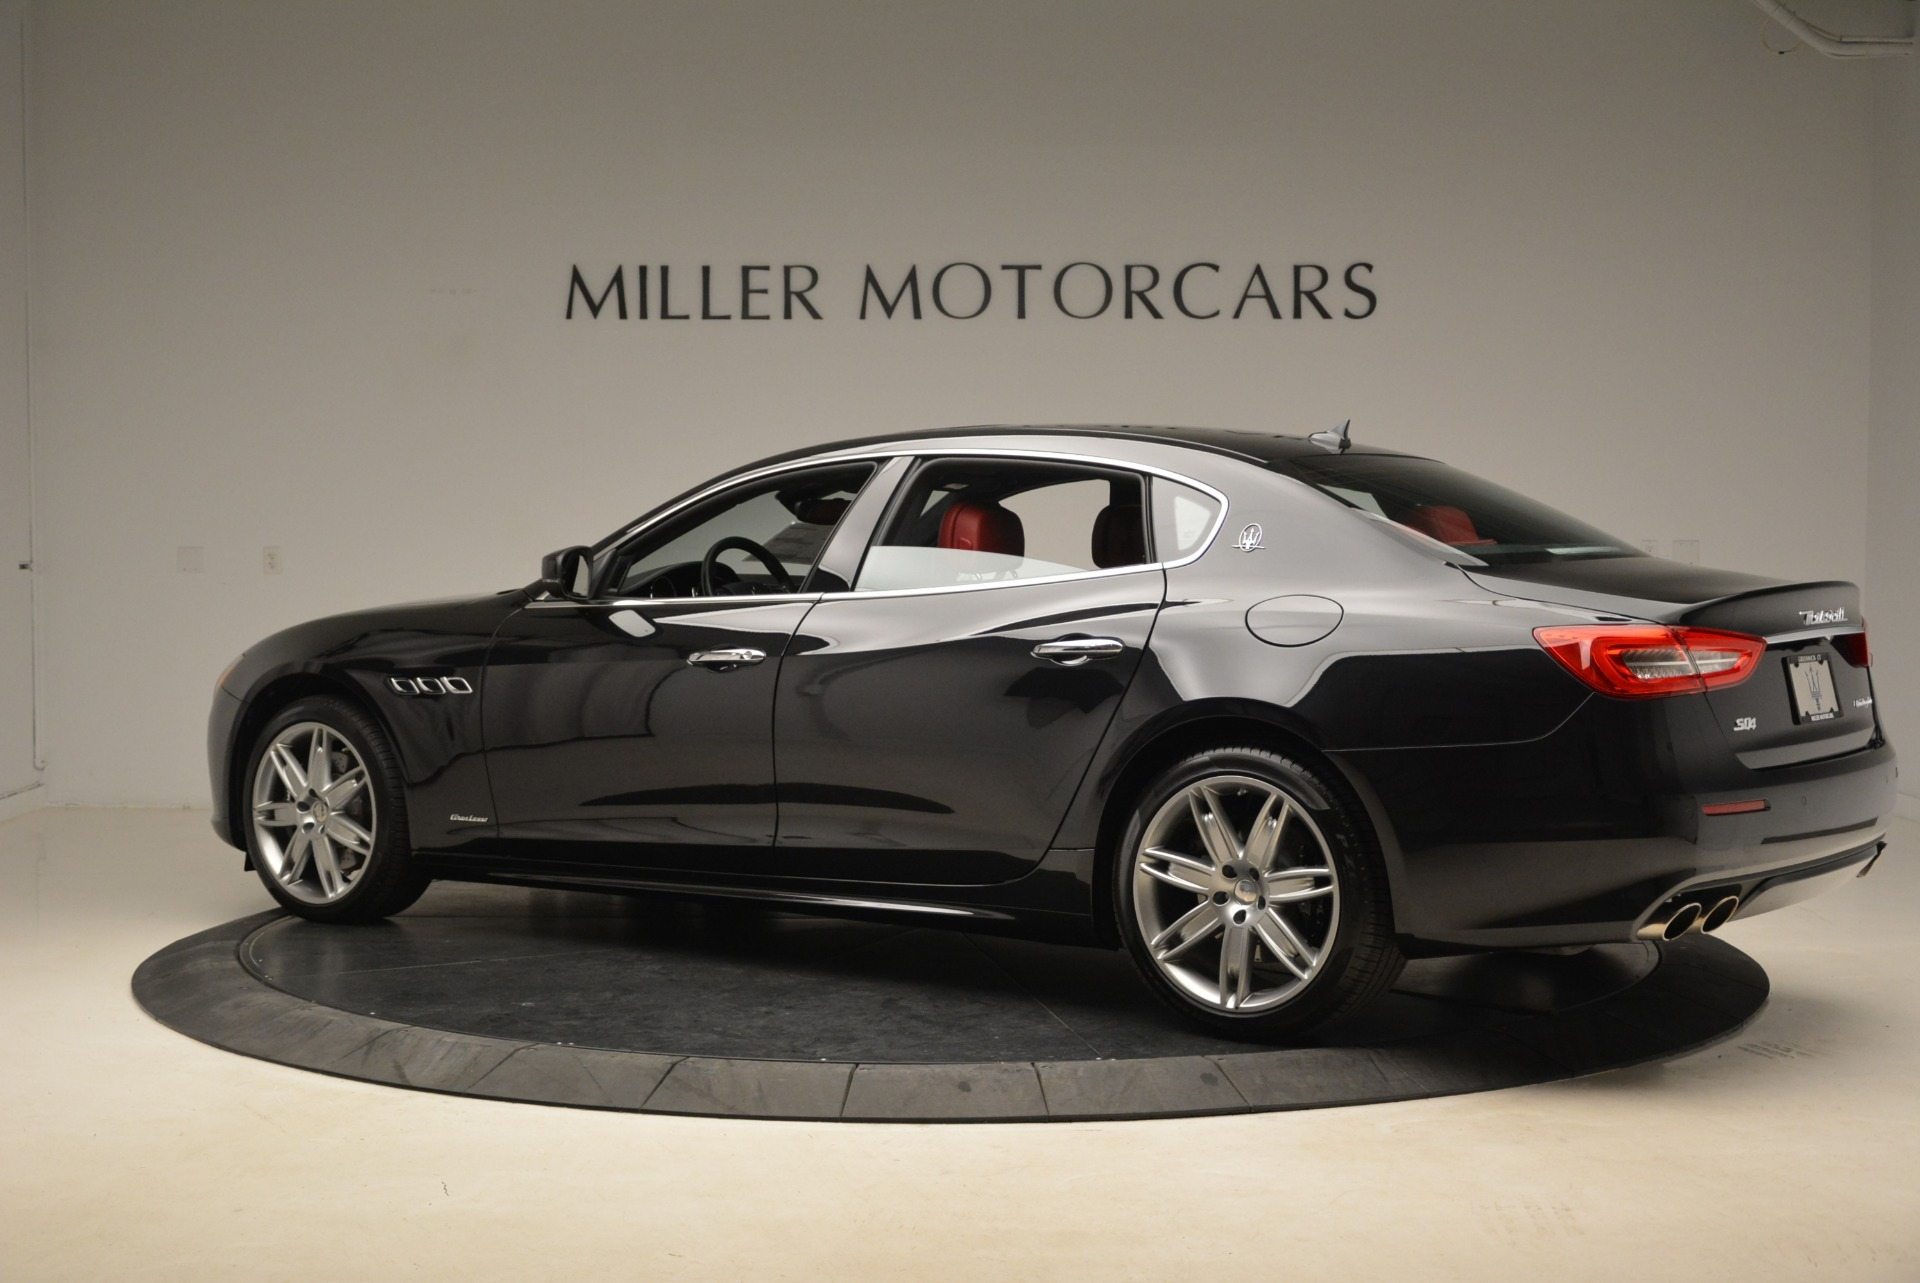 New 2018 Maserati Quattroporte S Q4 GranLusso For Sale In Greenwich, CT 2293_p4